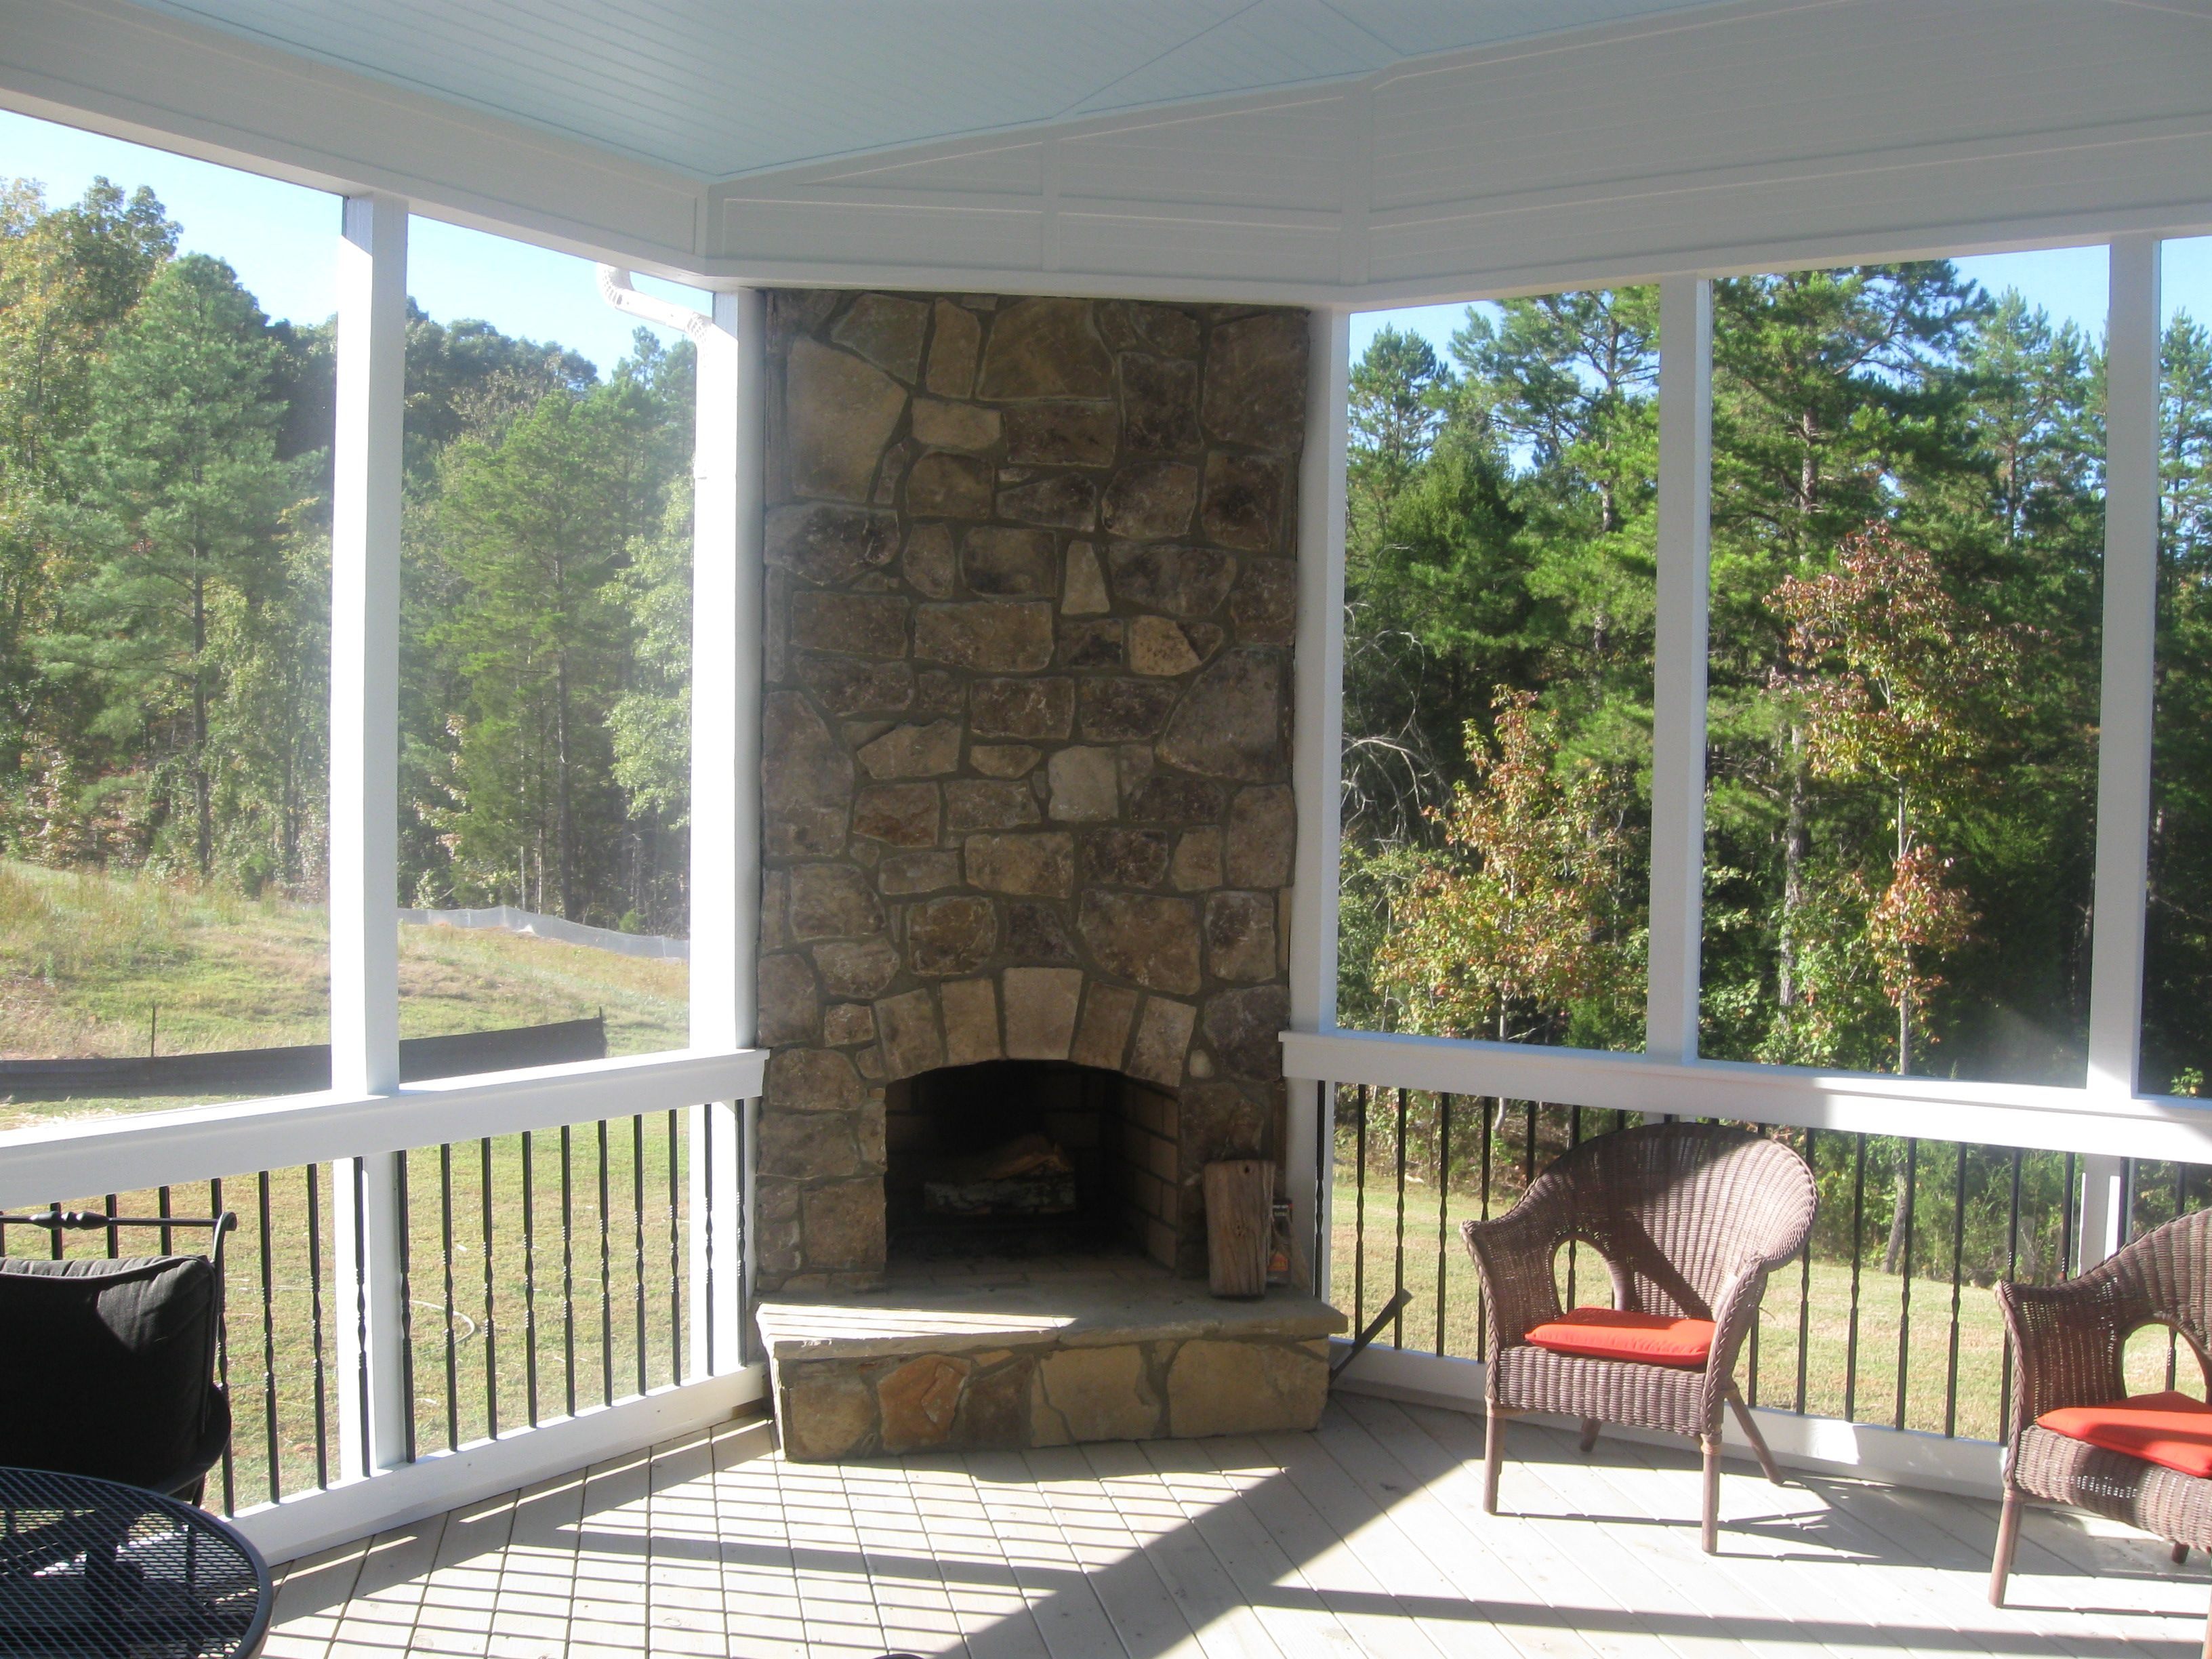 Screened in porch ideas outdoor fireplace integrated into outdoor fireplace integrated into your screen porch baanklon Image collections